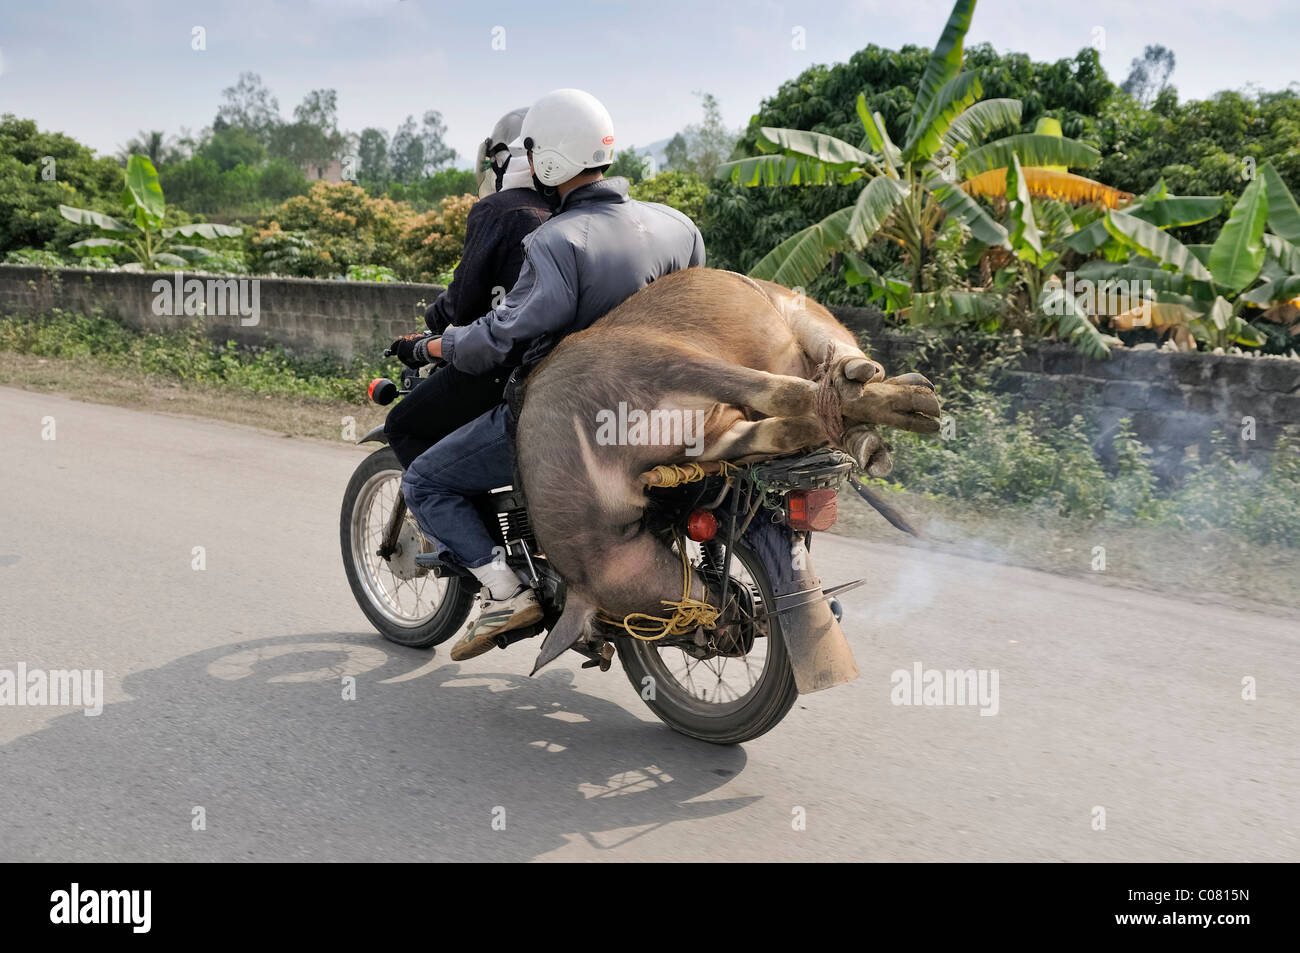 Moped loaded with water buffalo, Hanoi, Viet Nam, Southeast Asia - Stock Image